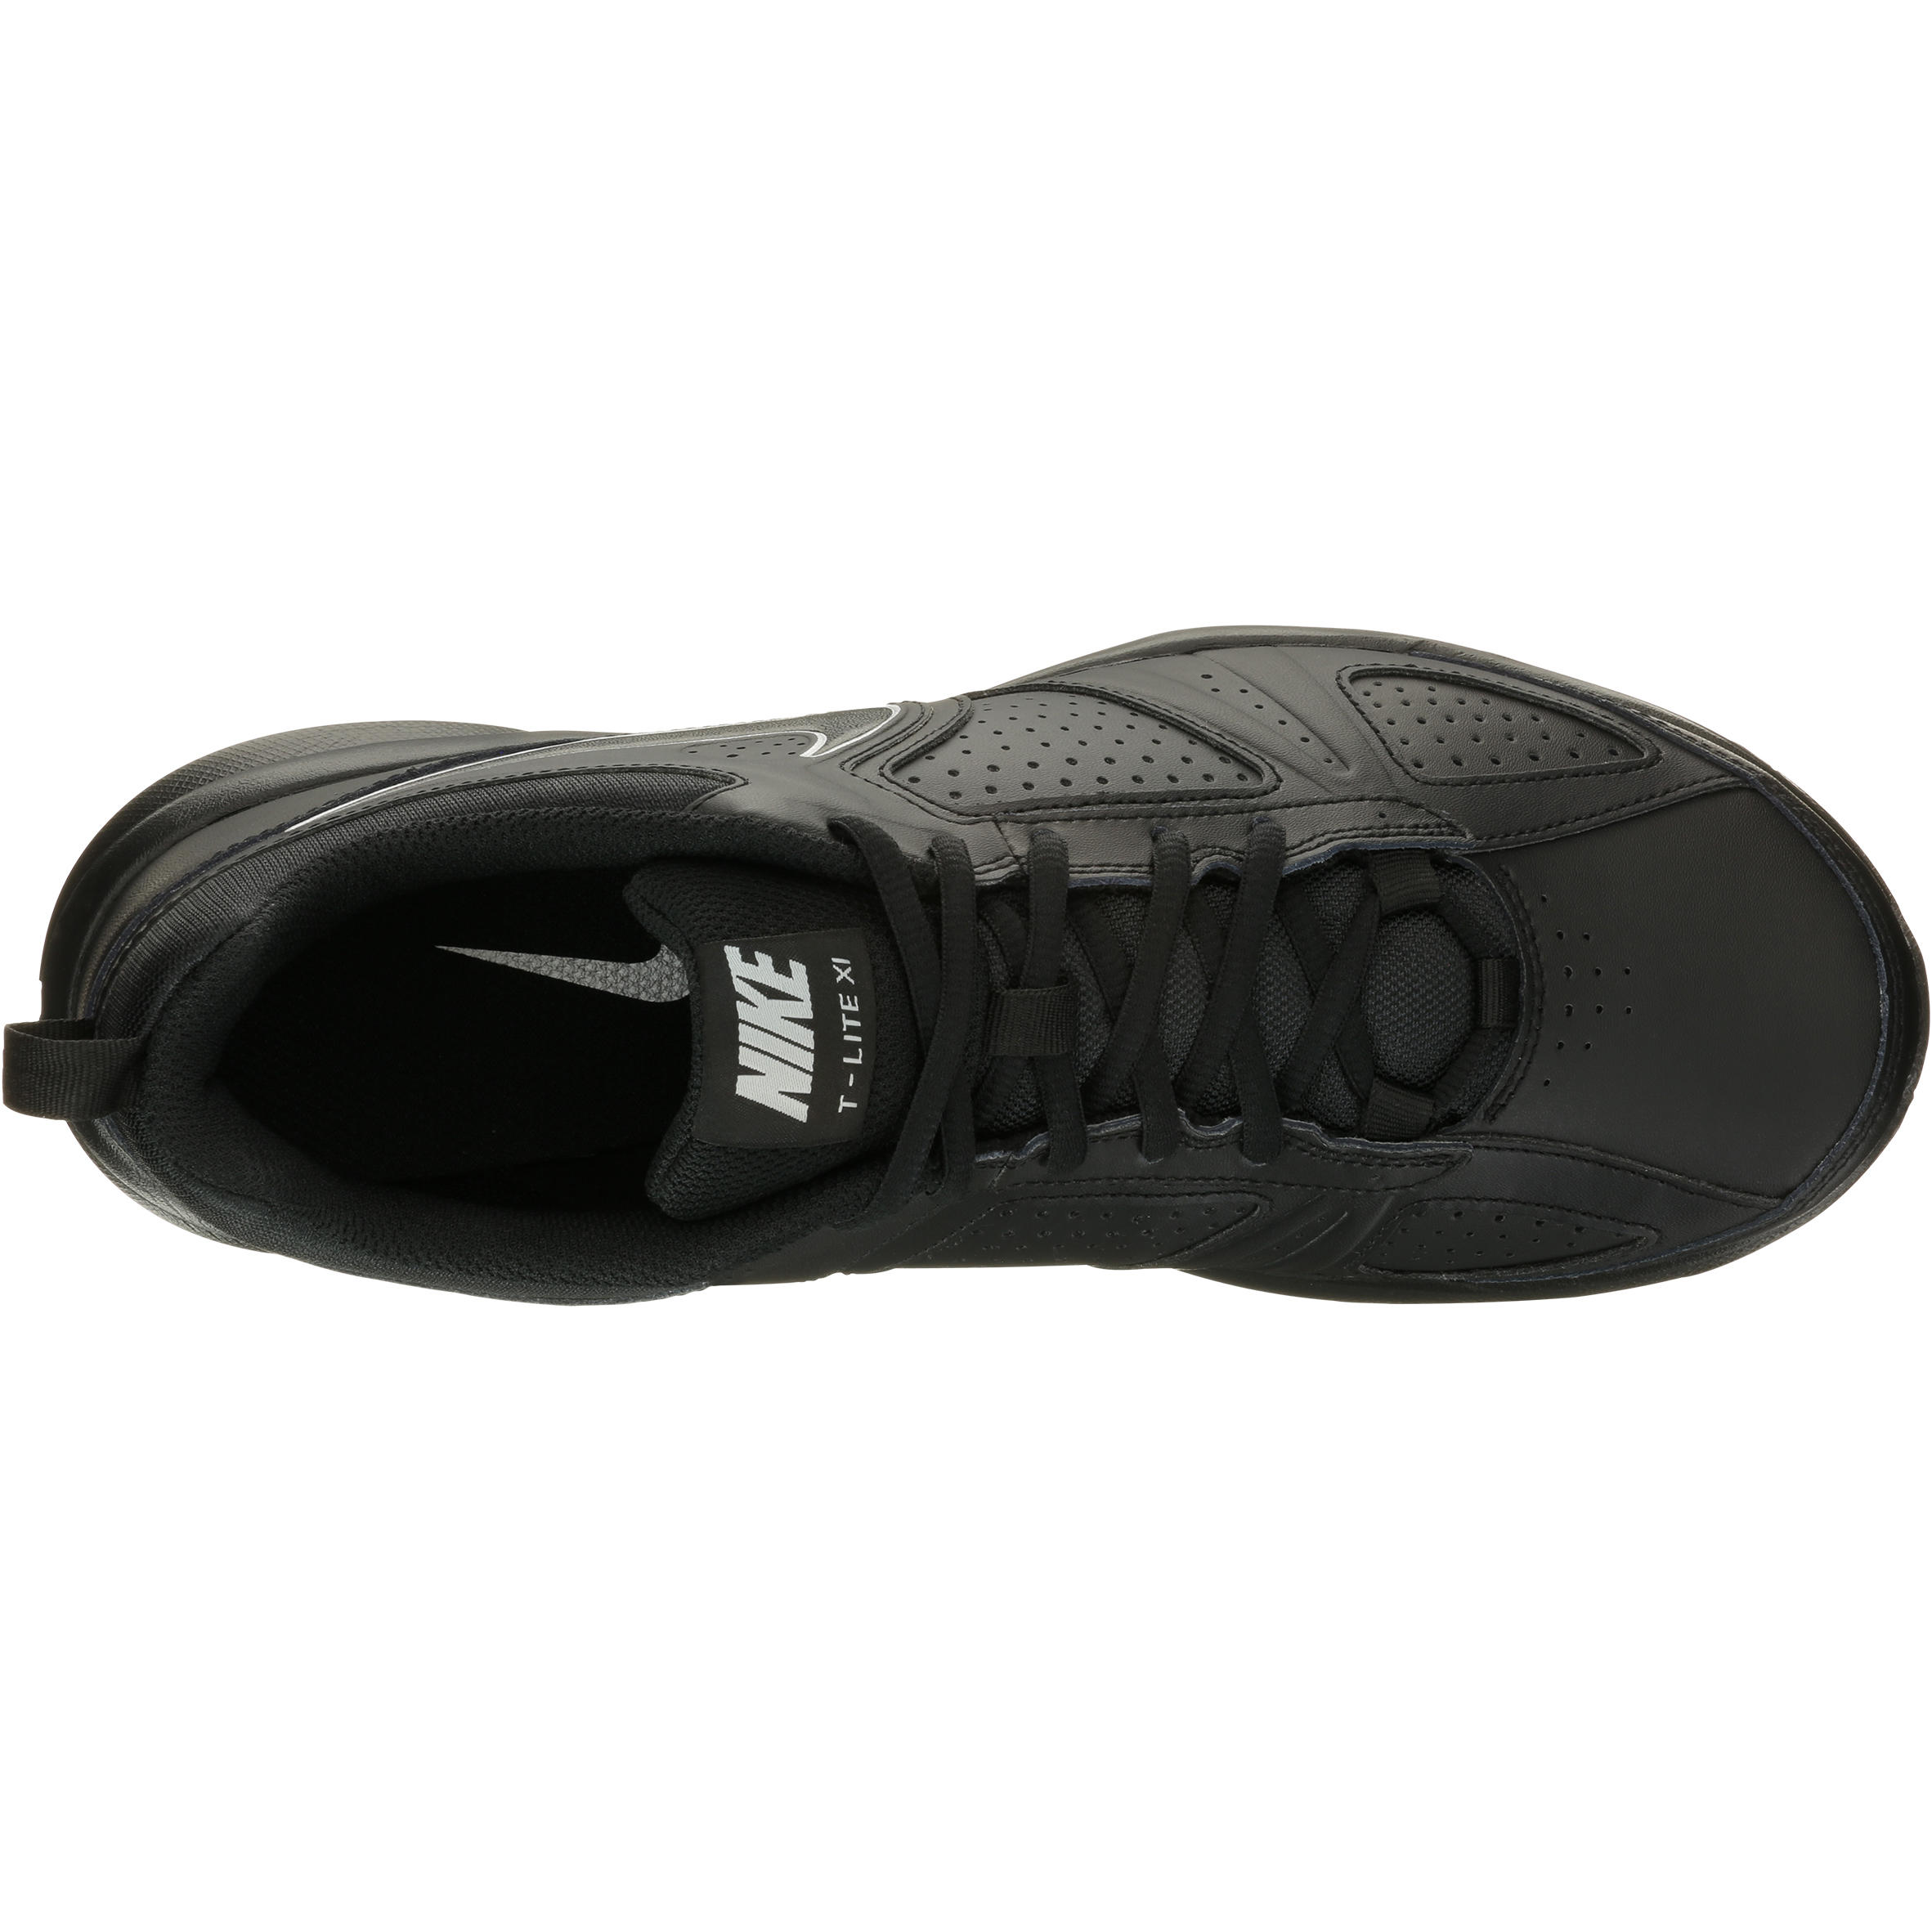 Marche Nike Chaussures Lite Tdbrqhcsx T Noir Homme Sportive